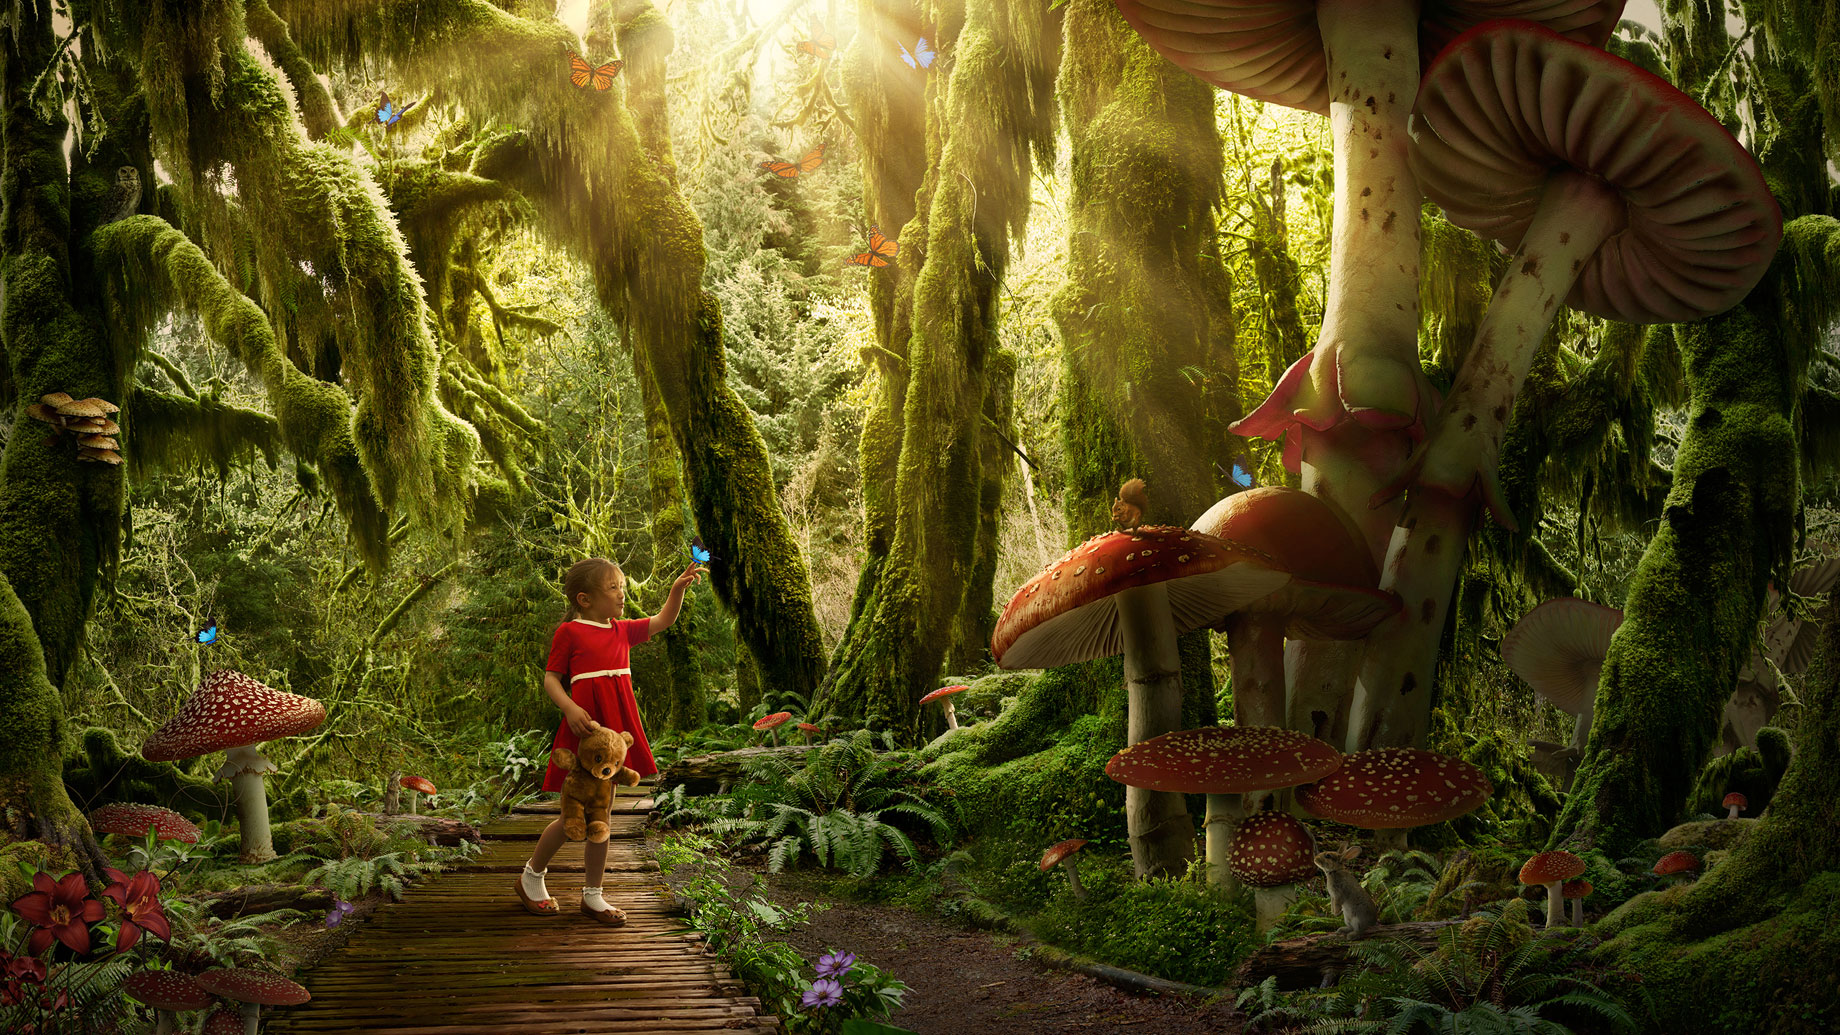 ChildrensDreams_EnchantedForest